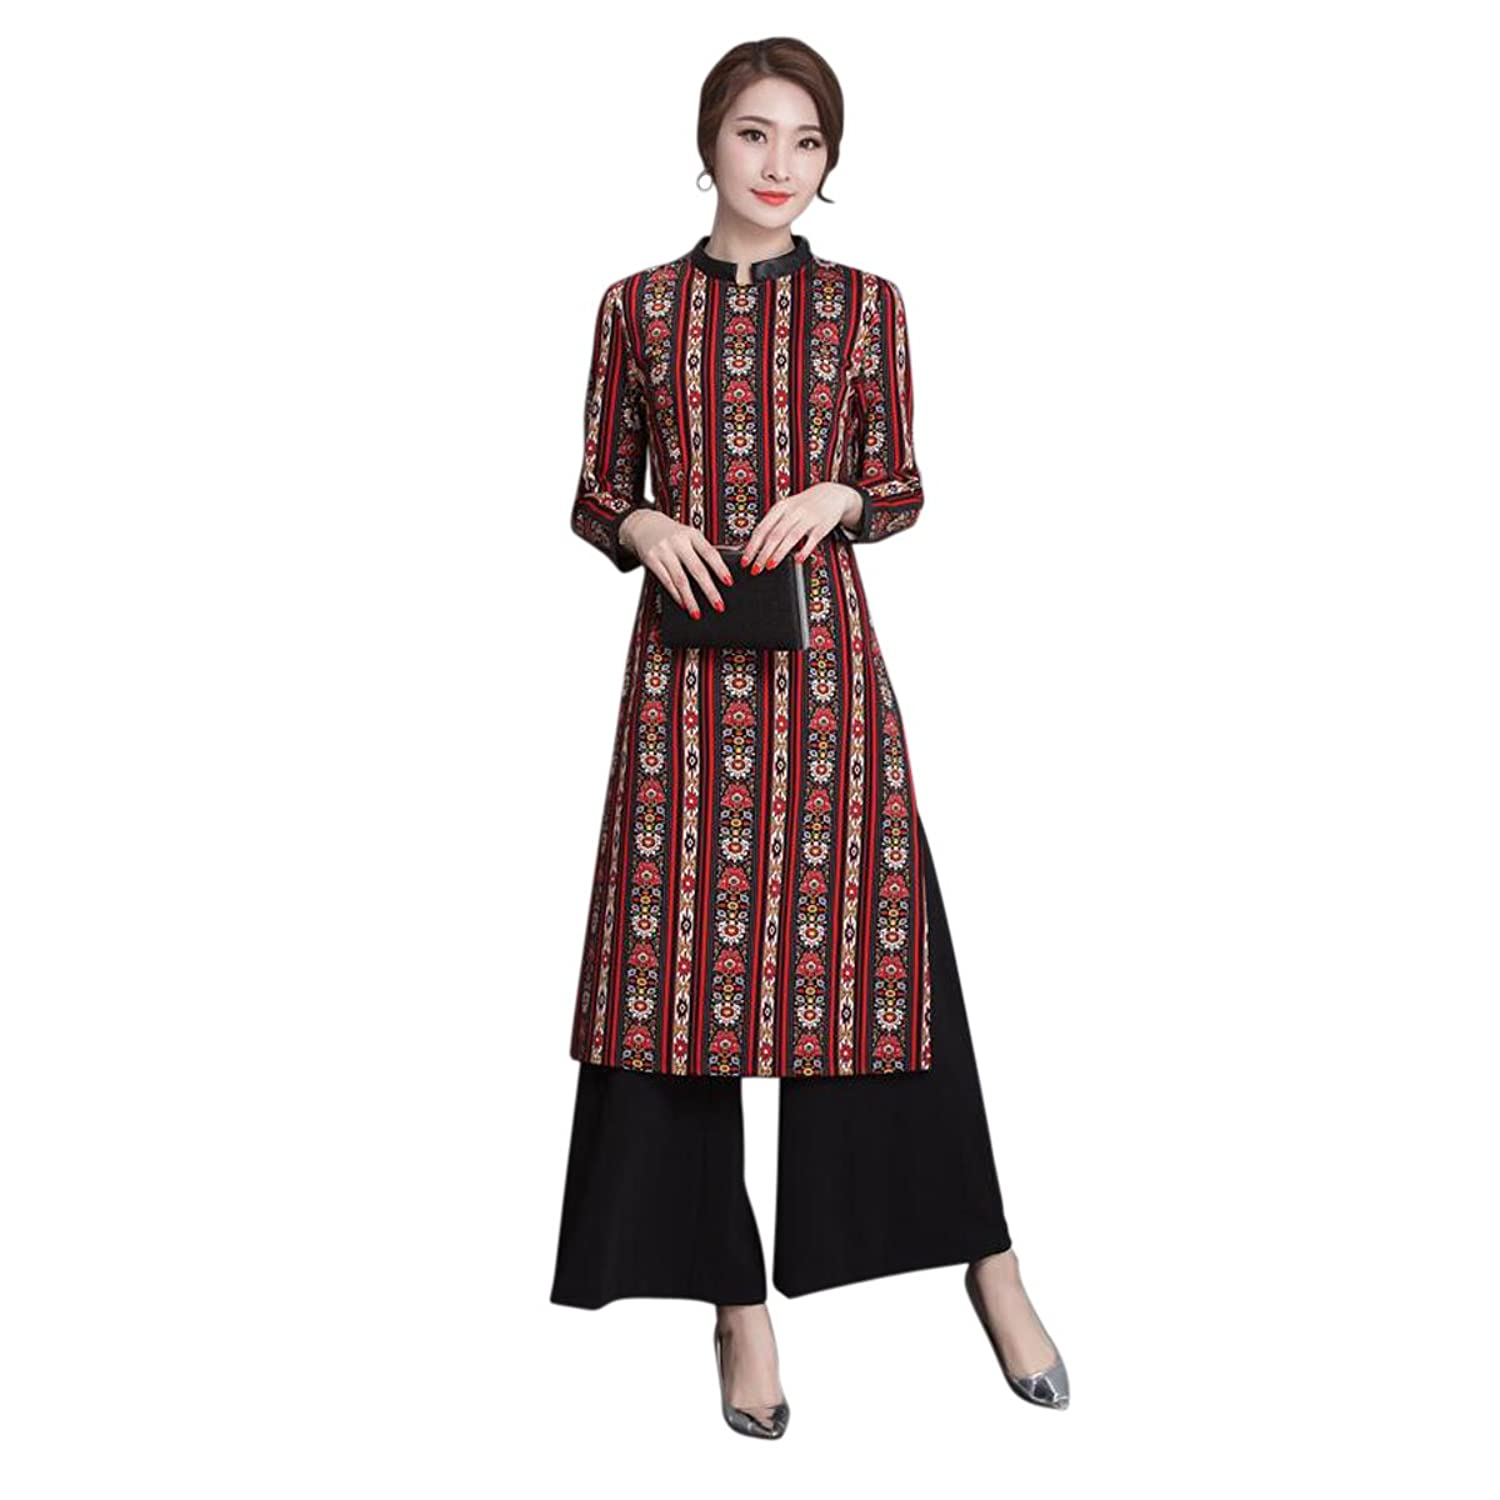 Women's Ethnic Style Retro Dress and Ladies Wide Leg Pants Fashion Two-Piece SuitM-2XL �